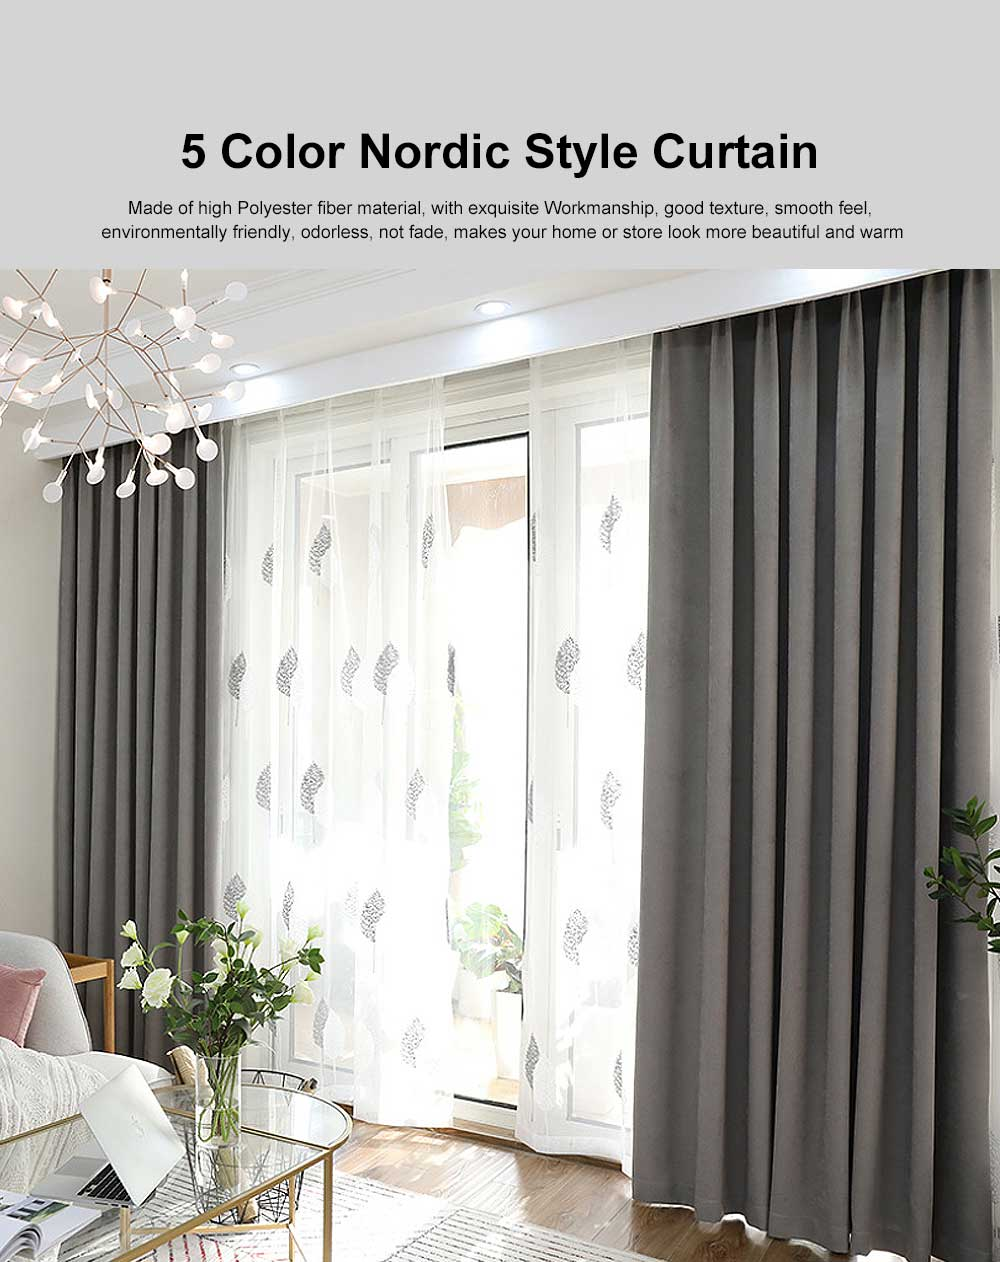 5 Color Nordic Style Curtain, Solid Color Curtains for Living Room Bedroom, Modern Minimalist Blackout Curtain 0